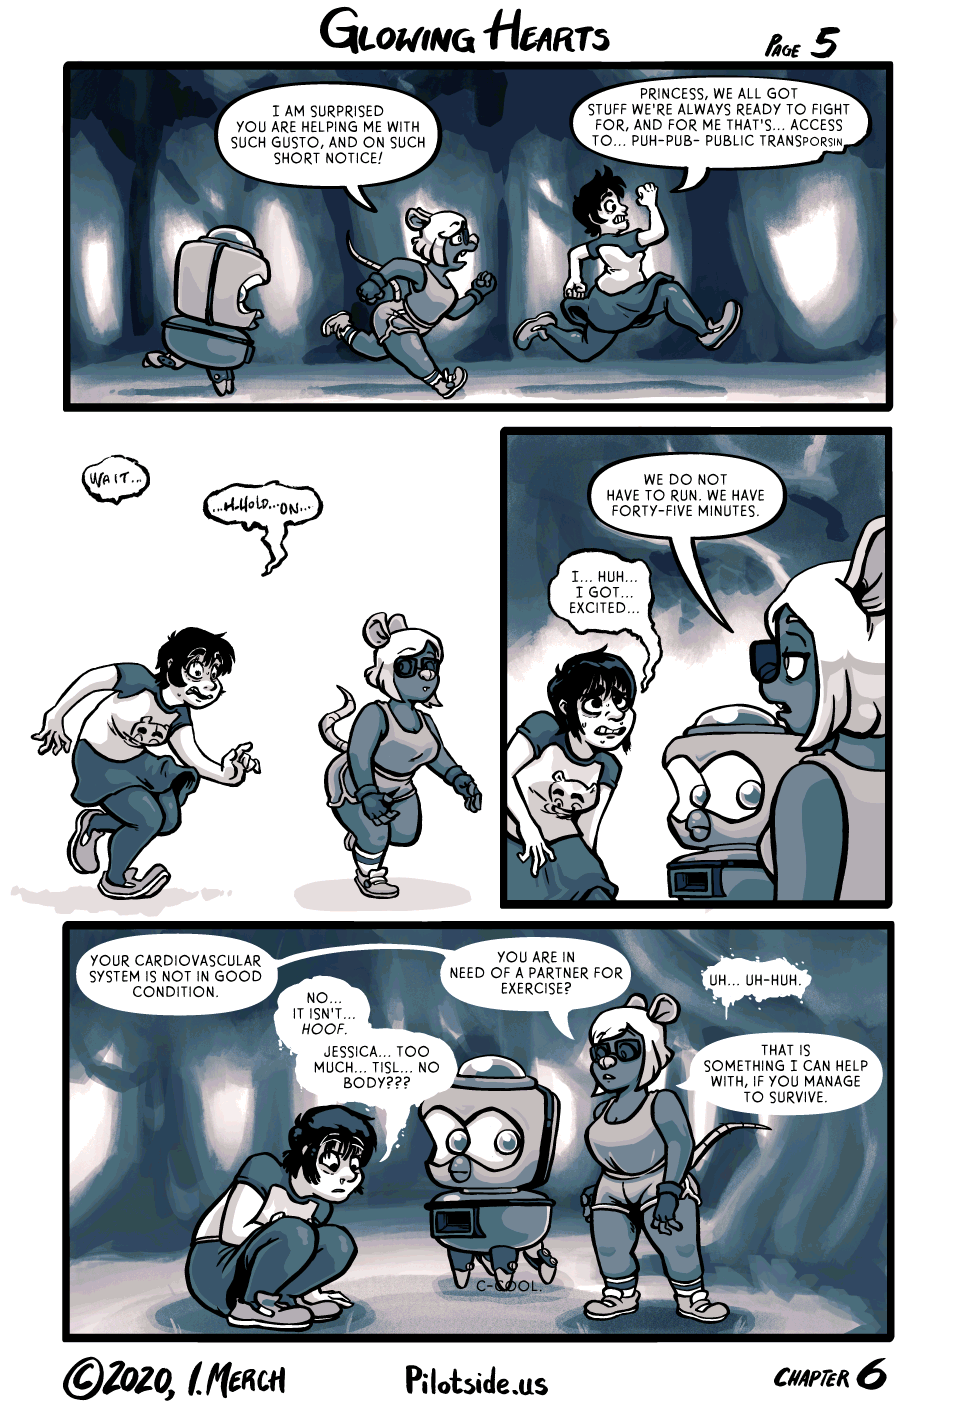 Based on SOME personal experience, but not all (my robot is much bigger)